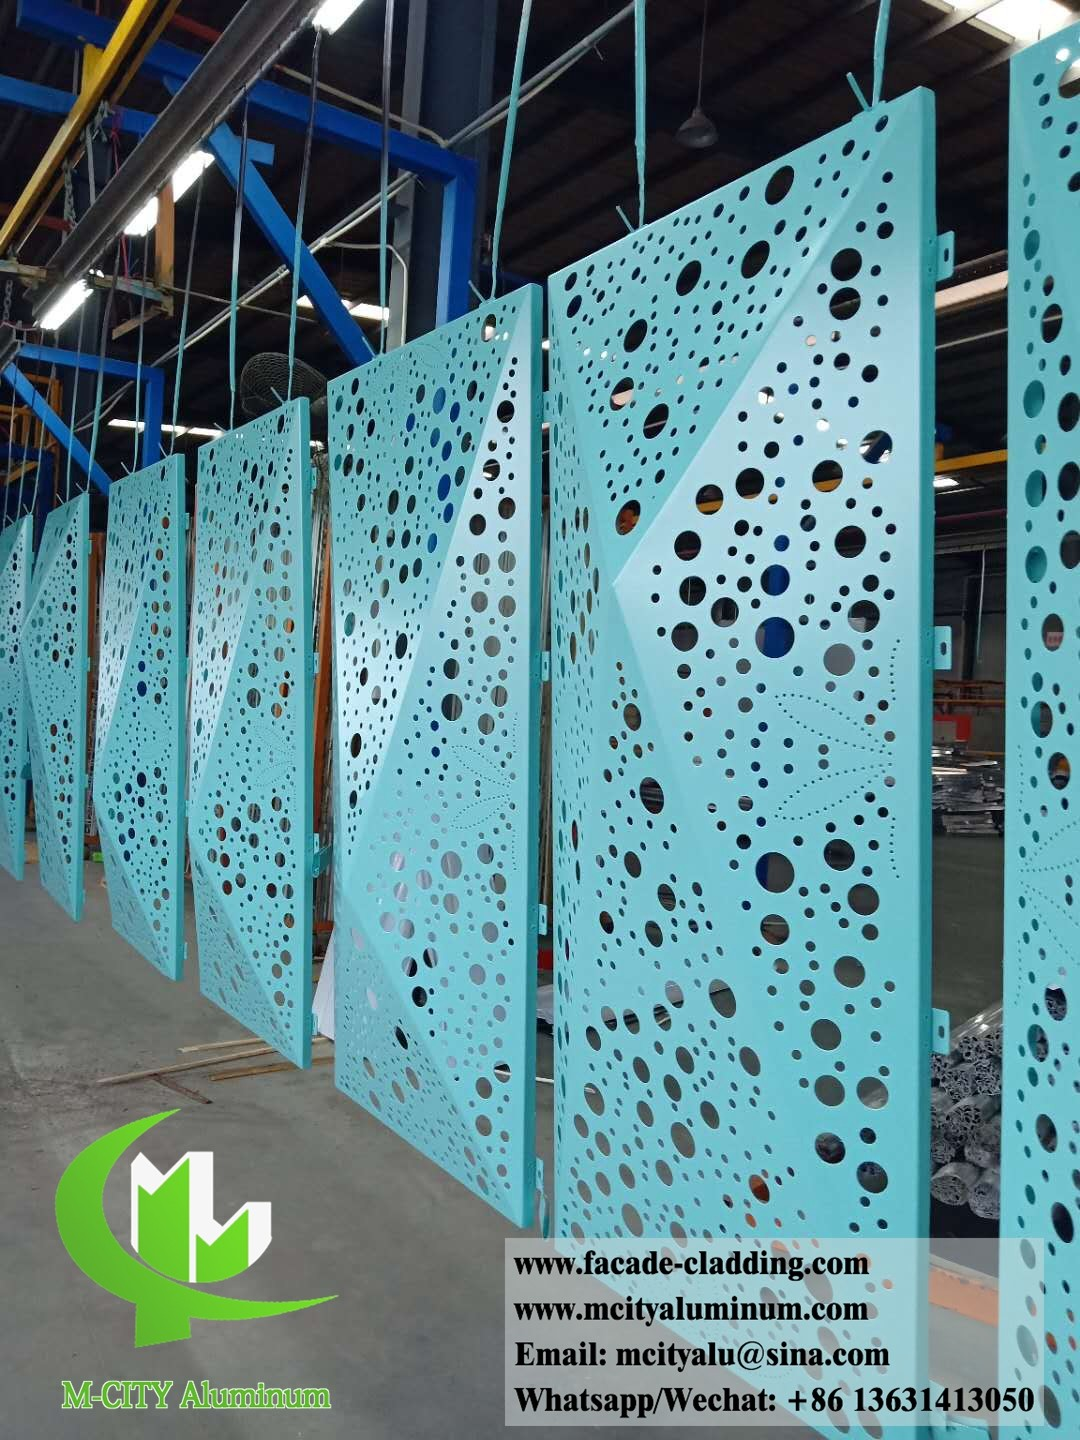 china latest news about 3D design aluminum facade panel project in Sri Lanka